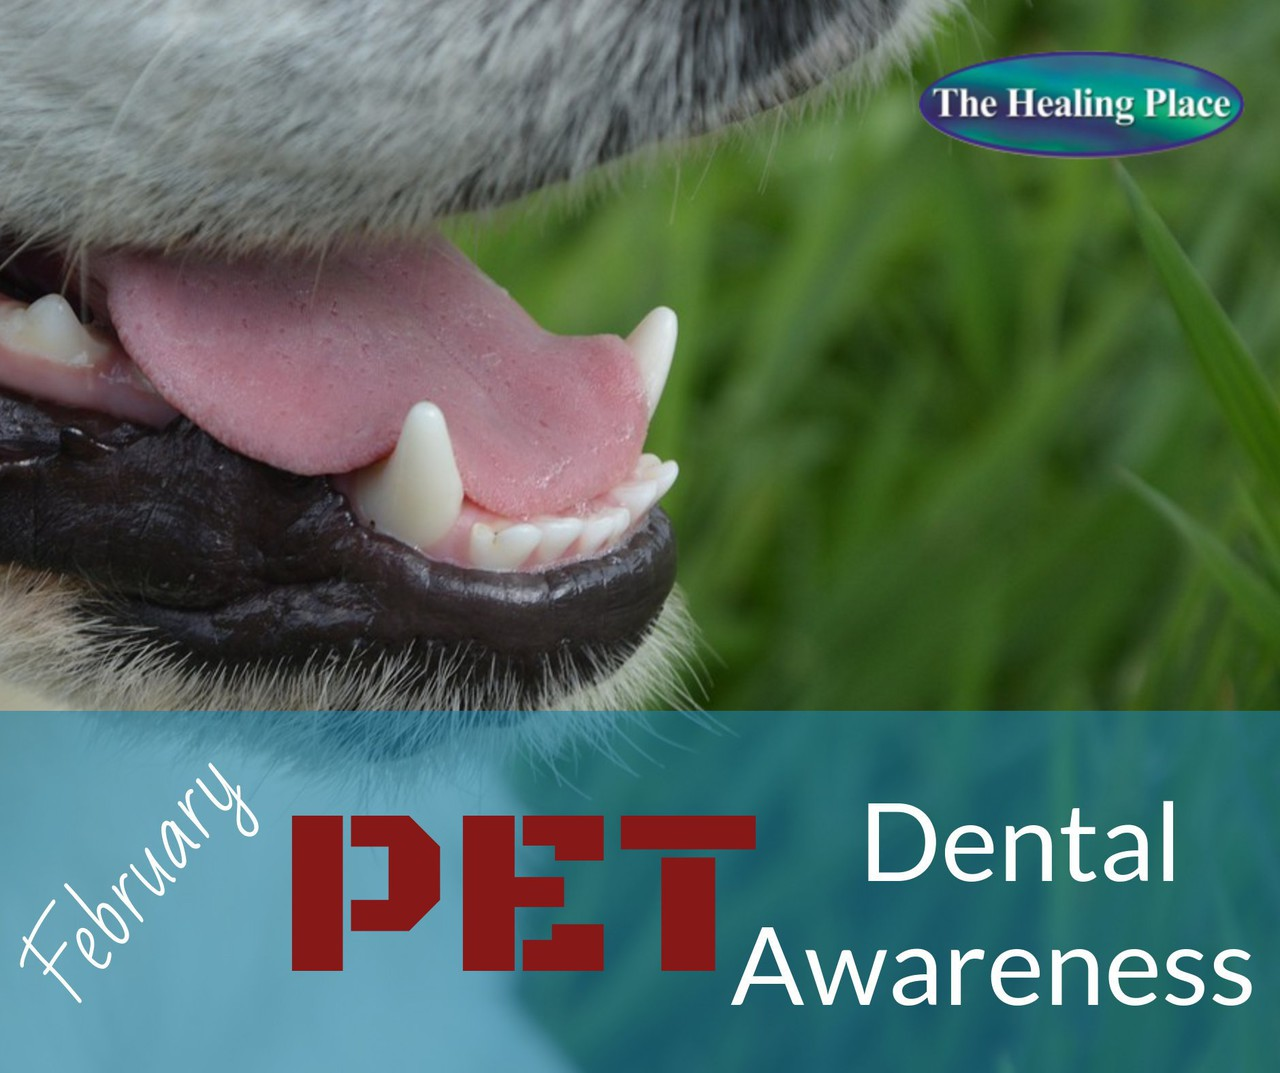 Feb pet dental awareness